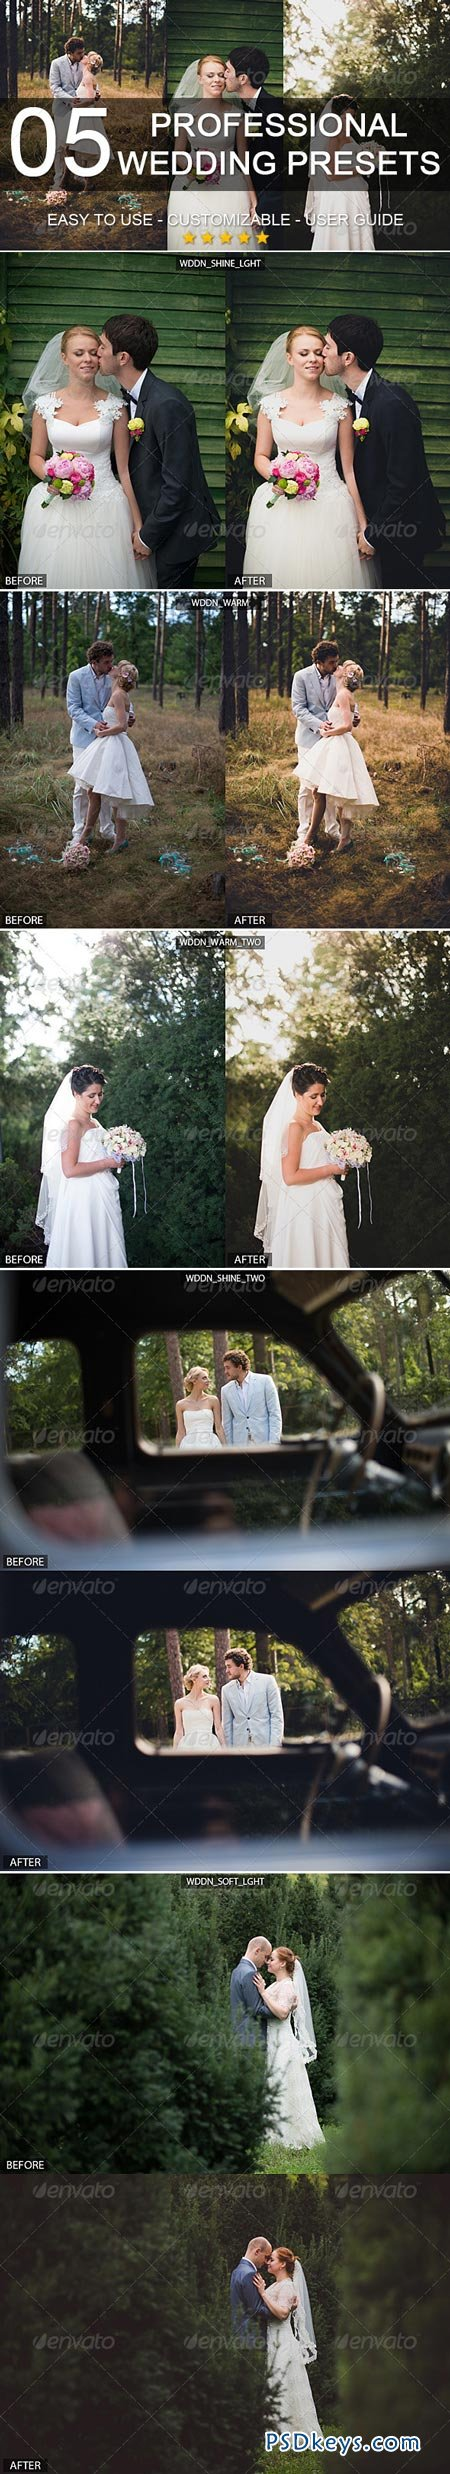 5 professional wedding presets 6124926